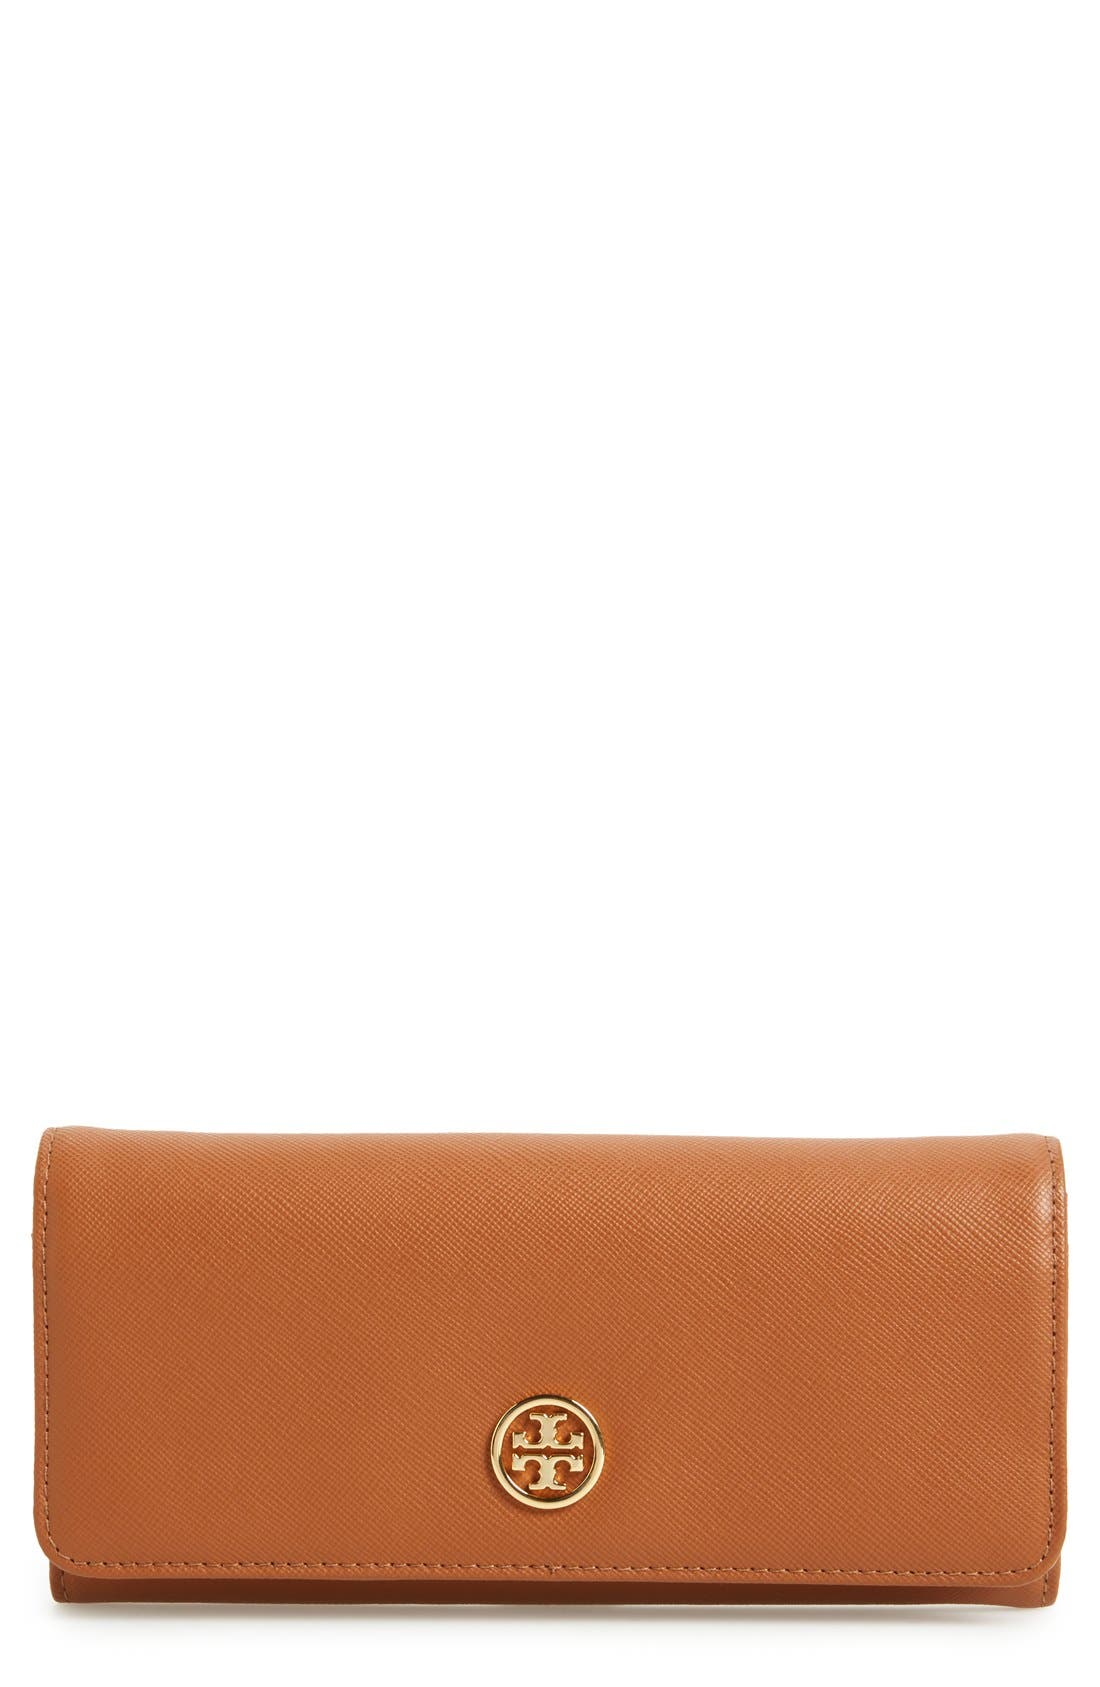 Alternate Image 1 Selected - Tory Burch 'Robinson' Envelope Continental Wallet